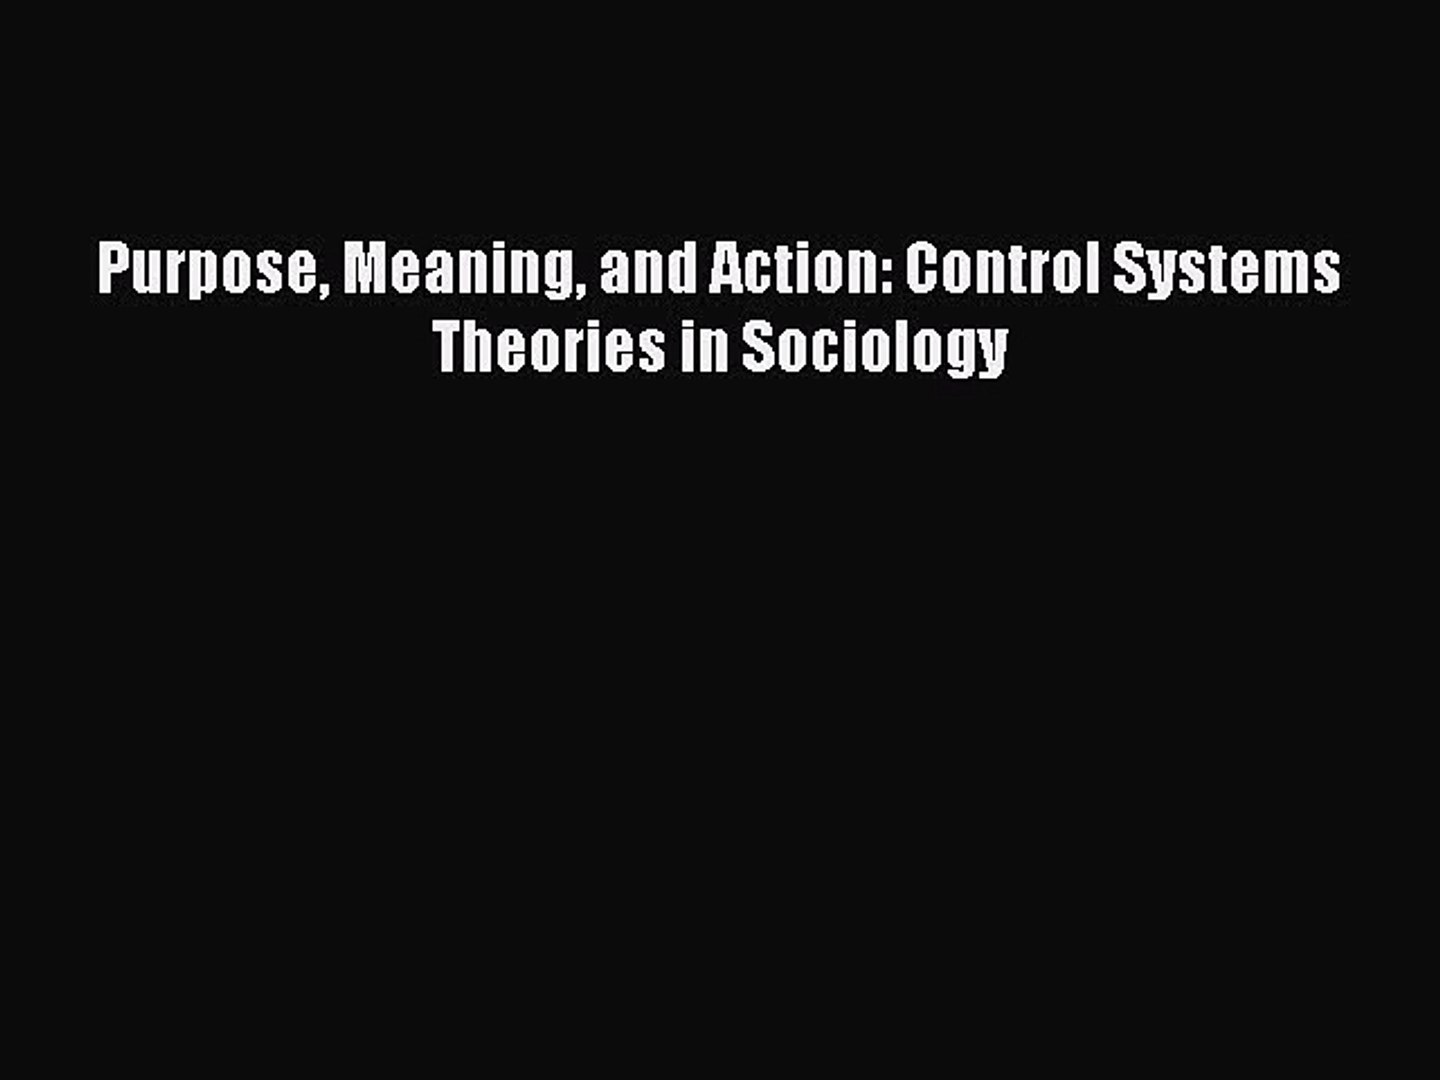 Control Systems Theories in Sociology